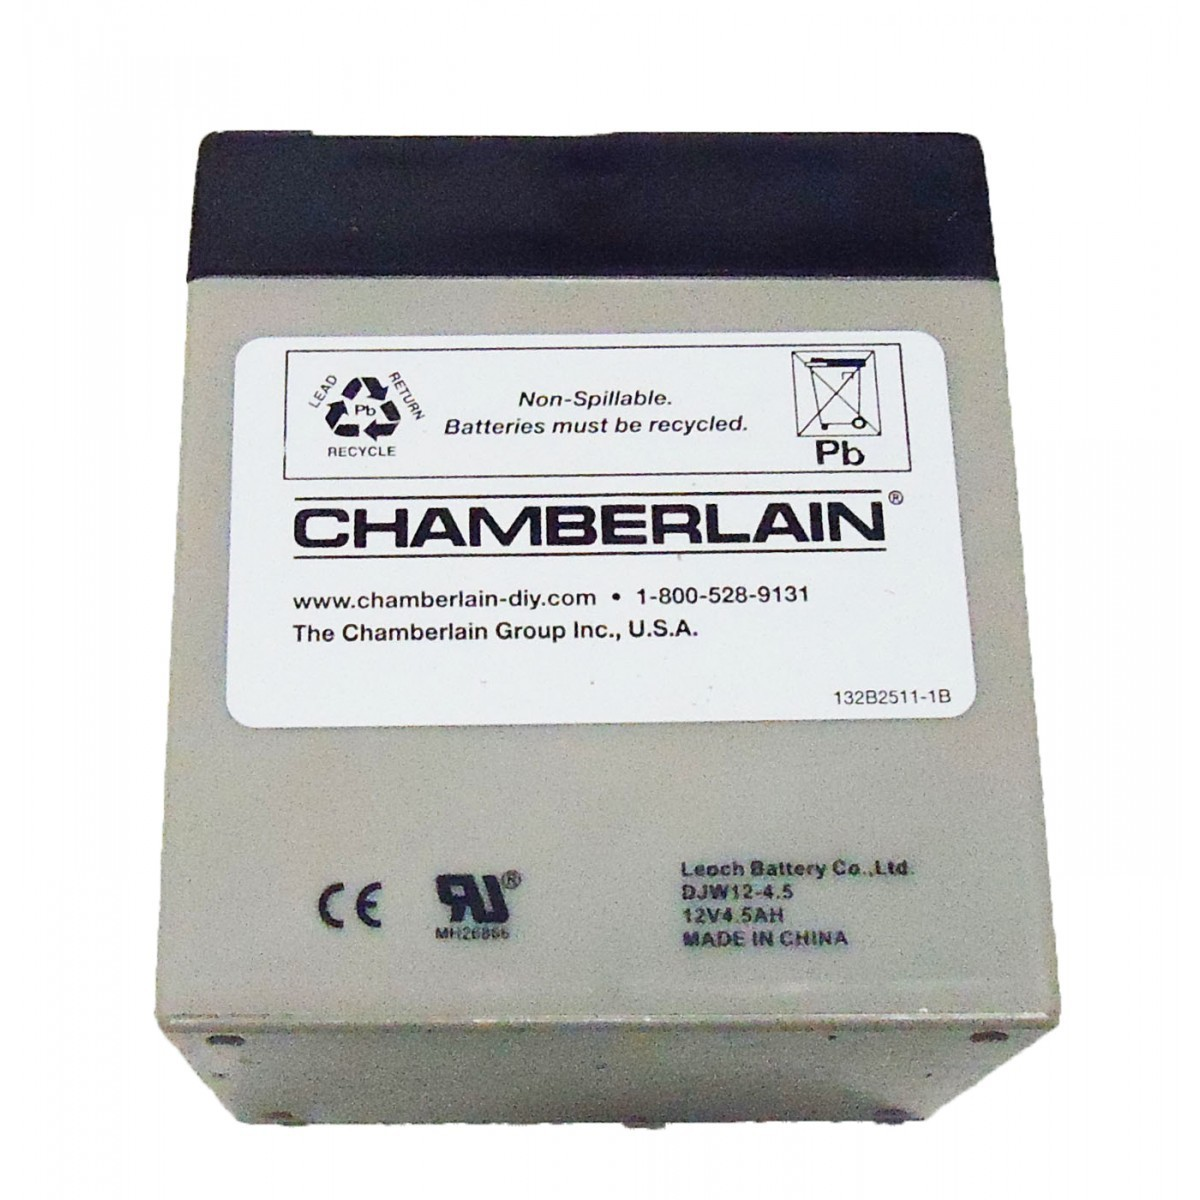 41A6357-1 Chamberlain 12v Battery Backup, 485LM